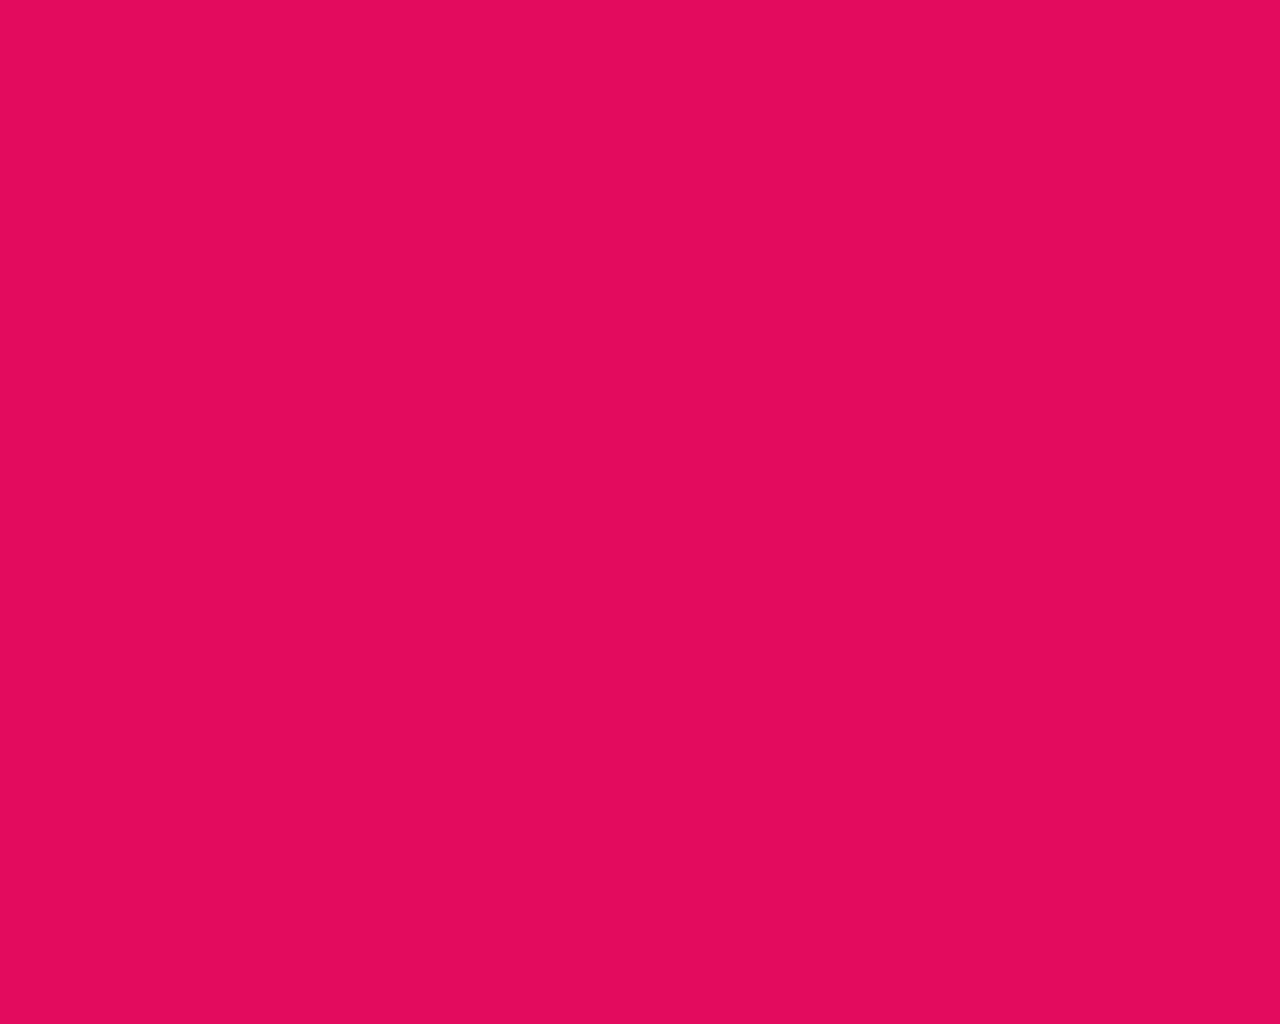 1280x1024 Raspberry Solid Color Background